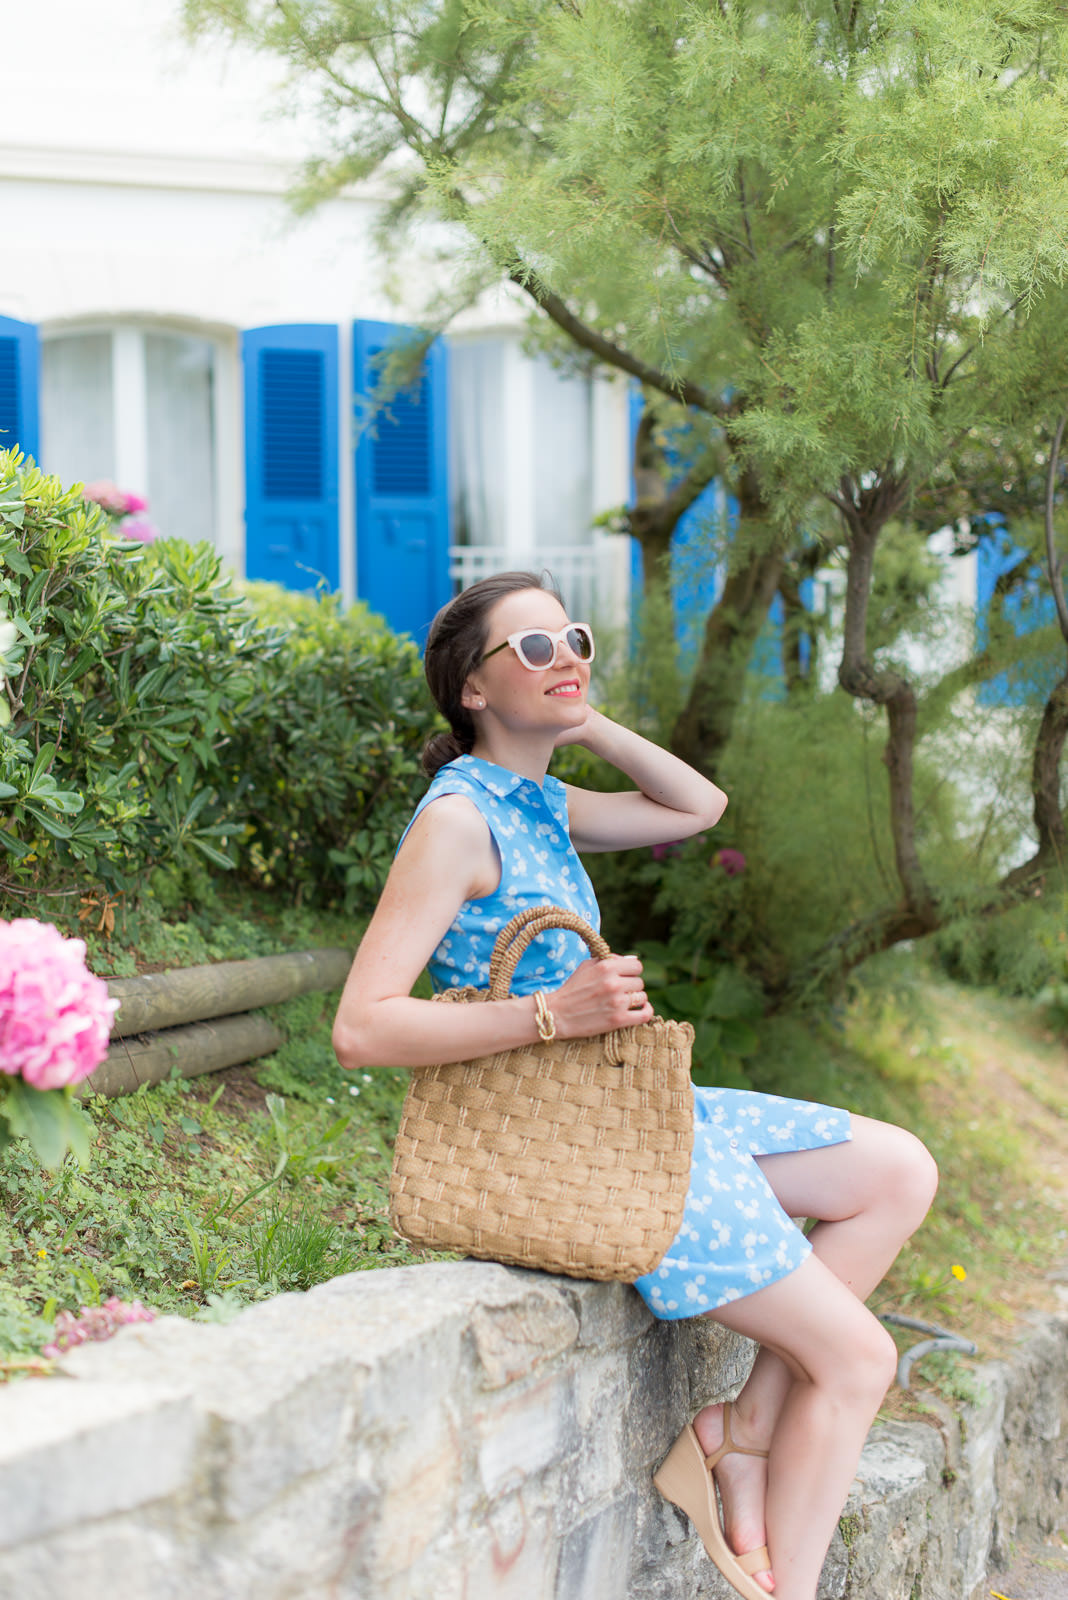 Blog-Mode-And-The-City-Looks-Hortensias-Biarritz-3